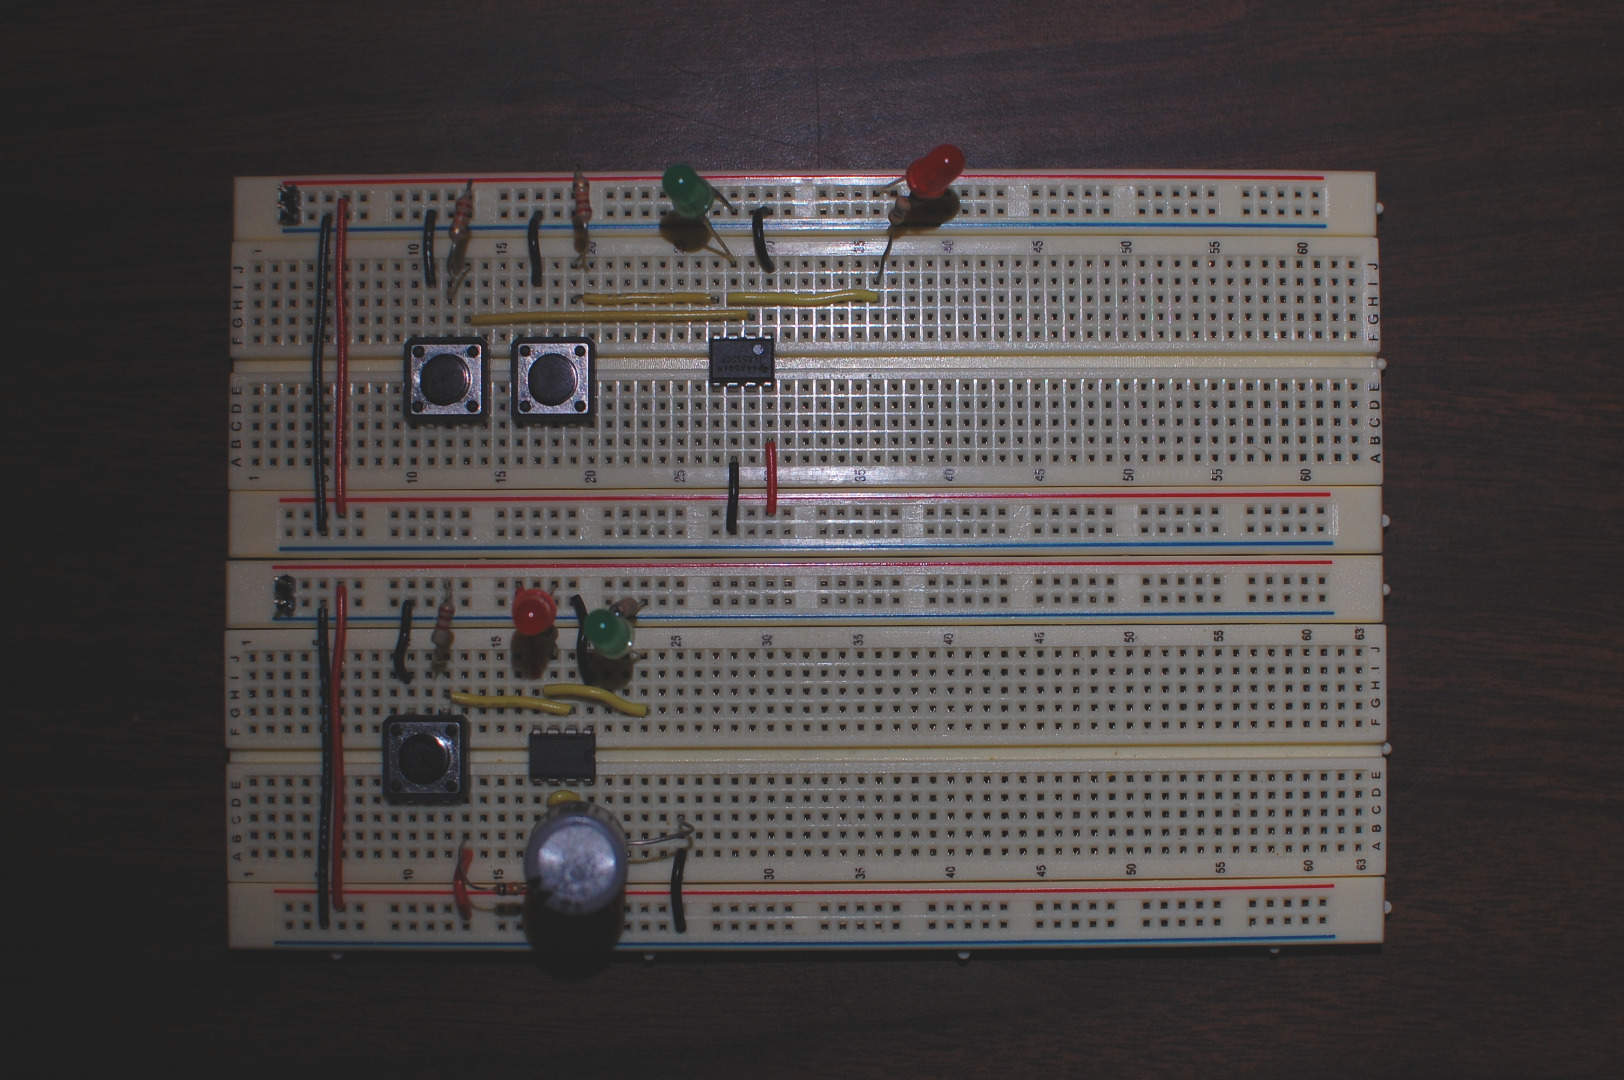 Picture of 555 Timer Mono-stable and Bi-stable Modes